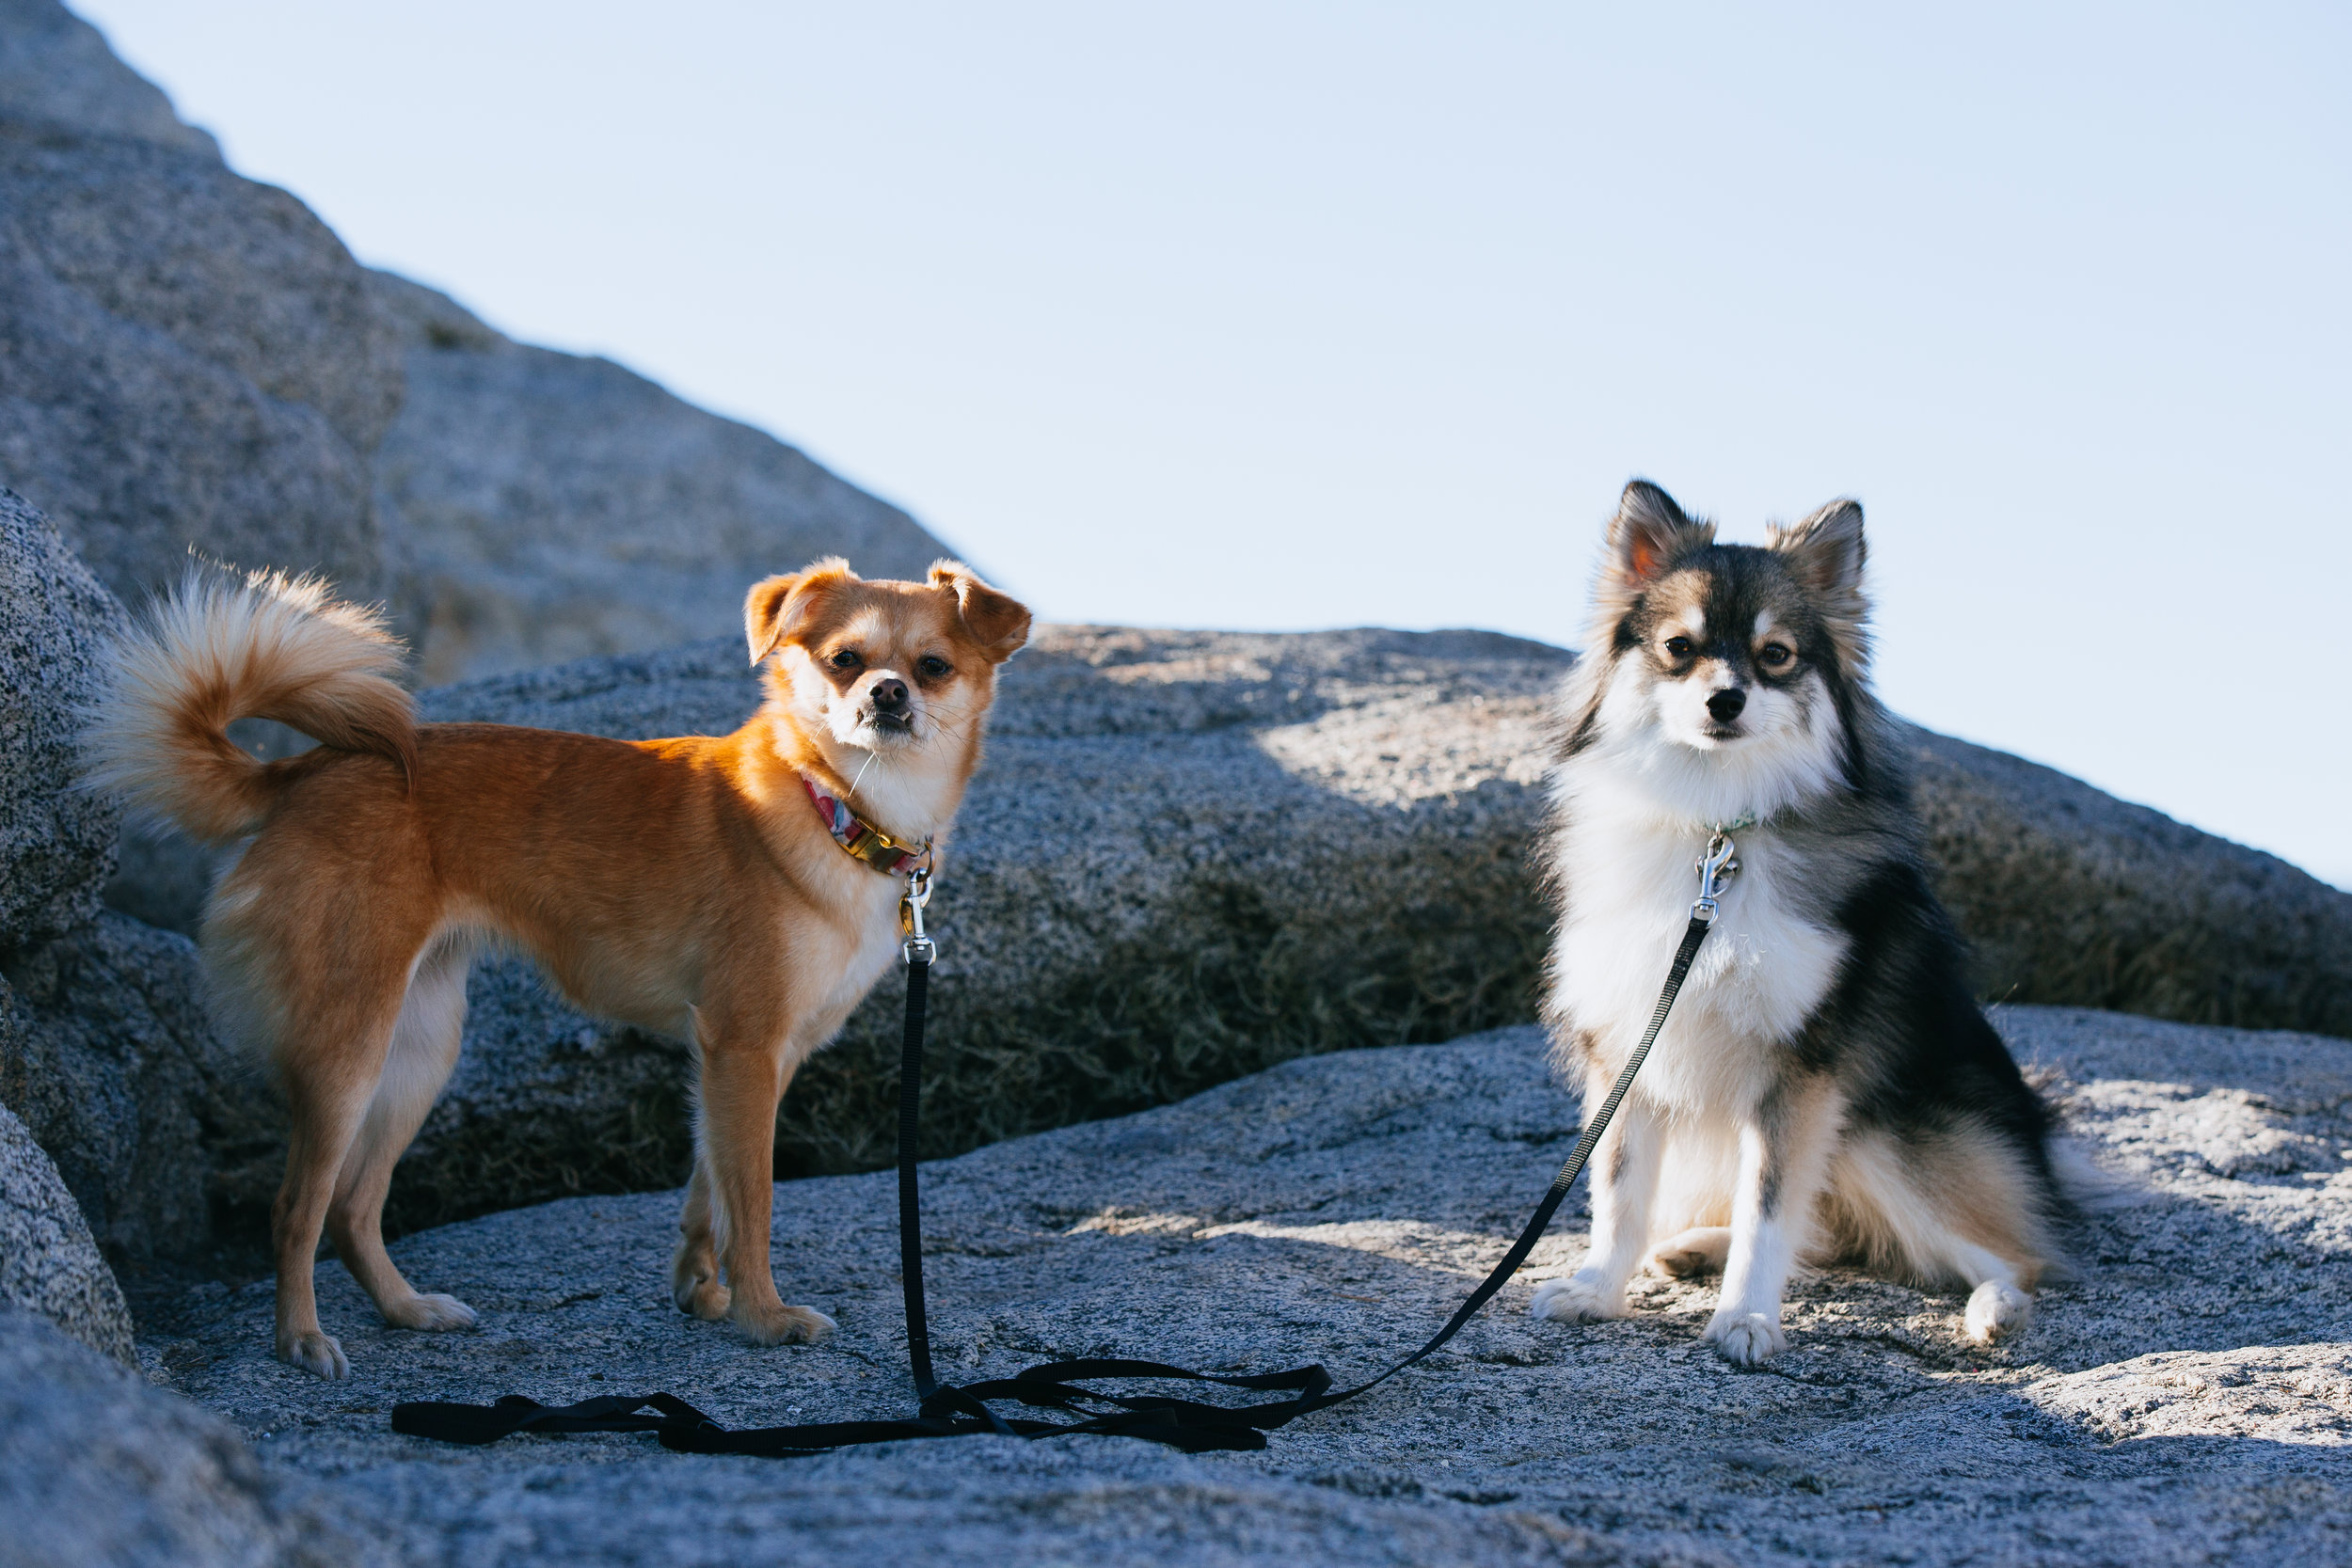 I typically trust the pups to hike off leash because they have learned and practiced good recall. But during breaks I will put a long leash on to keep them from wandering off.